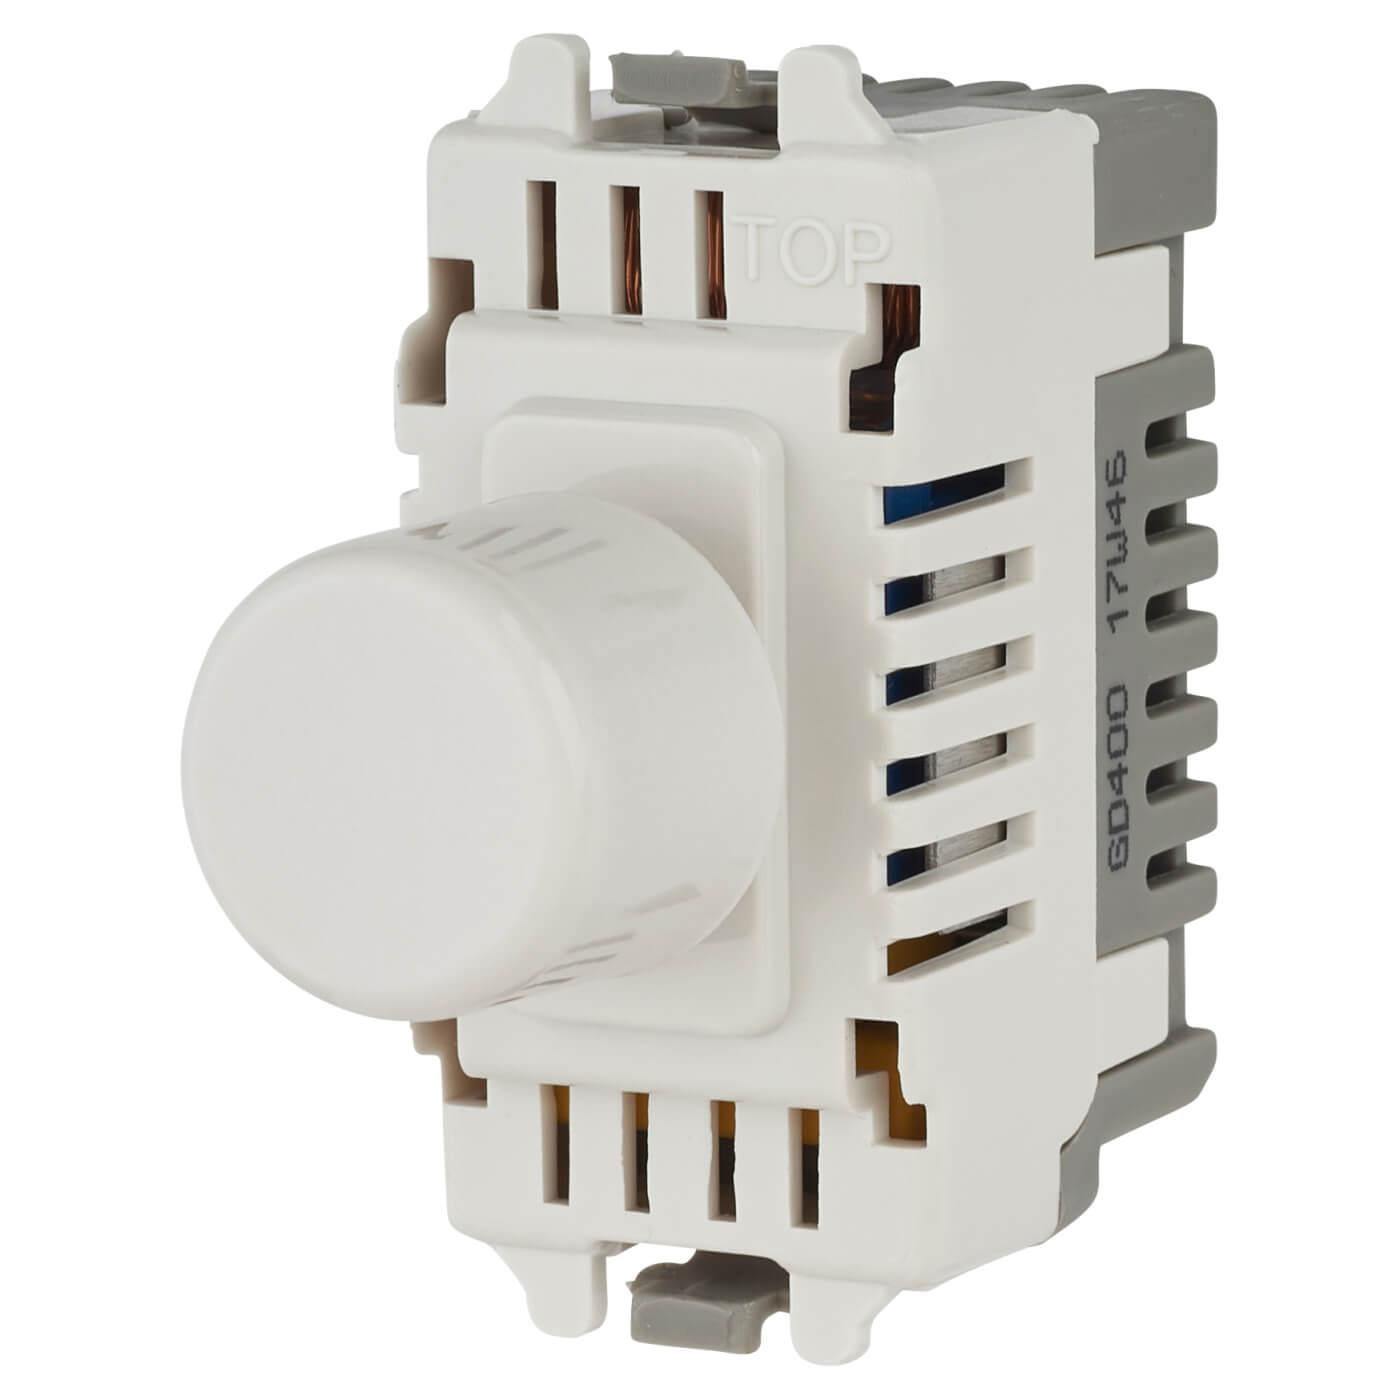 Awesome Screened Quadplexed Outlet White Electricaldirect Wiring Digital Resources Jebrpkbiperorg